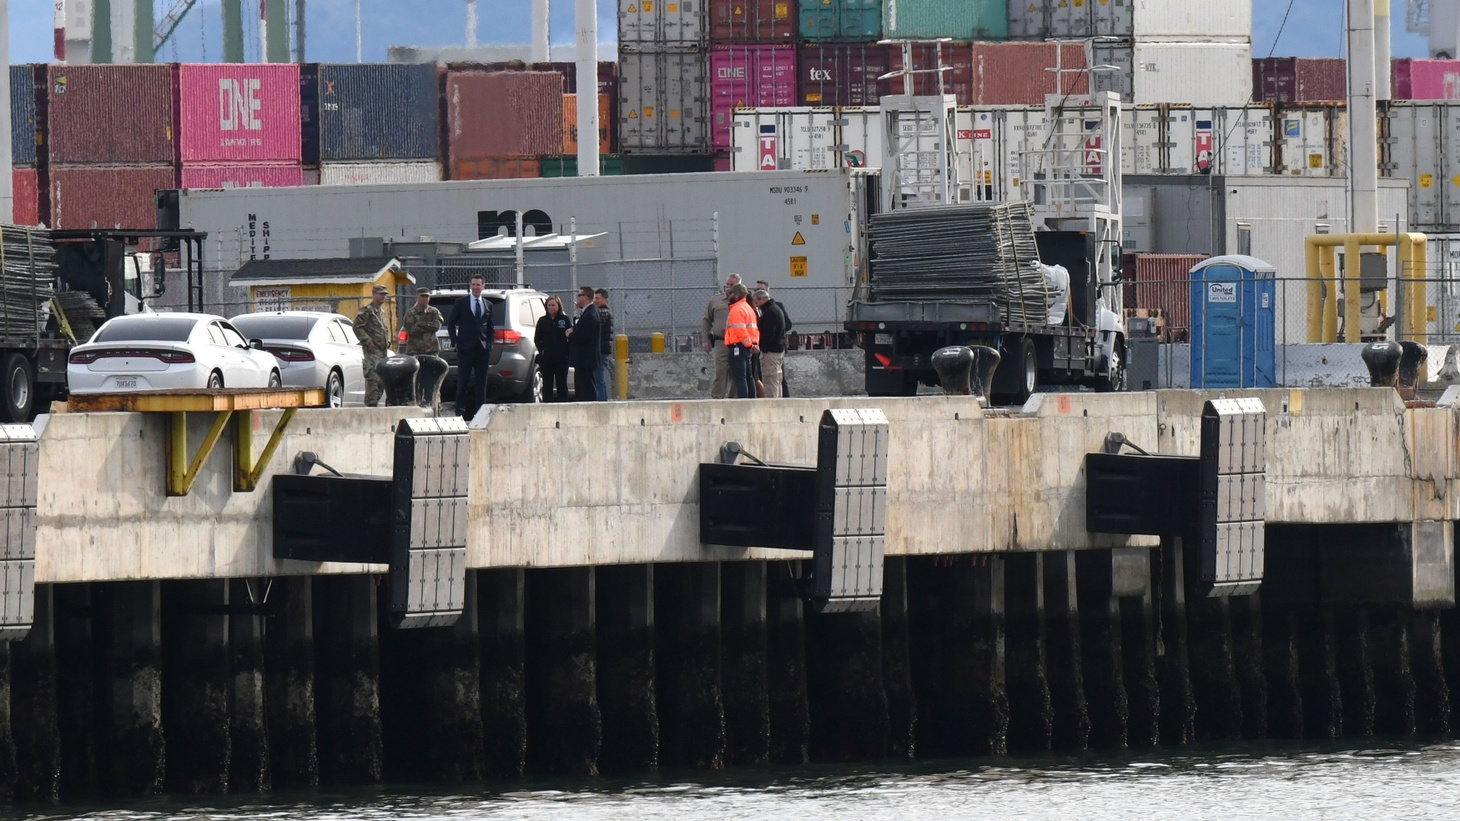 Governor Gavin Newsom inspects the location at the Port of Oakland, where the Grand Princess cruise ship carrying passengers who have tested positive for coronavirus is expected to dock. March 8, 2020.